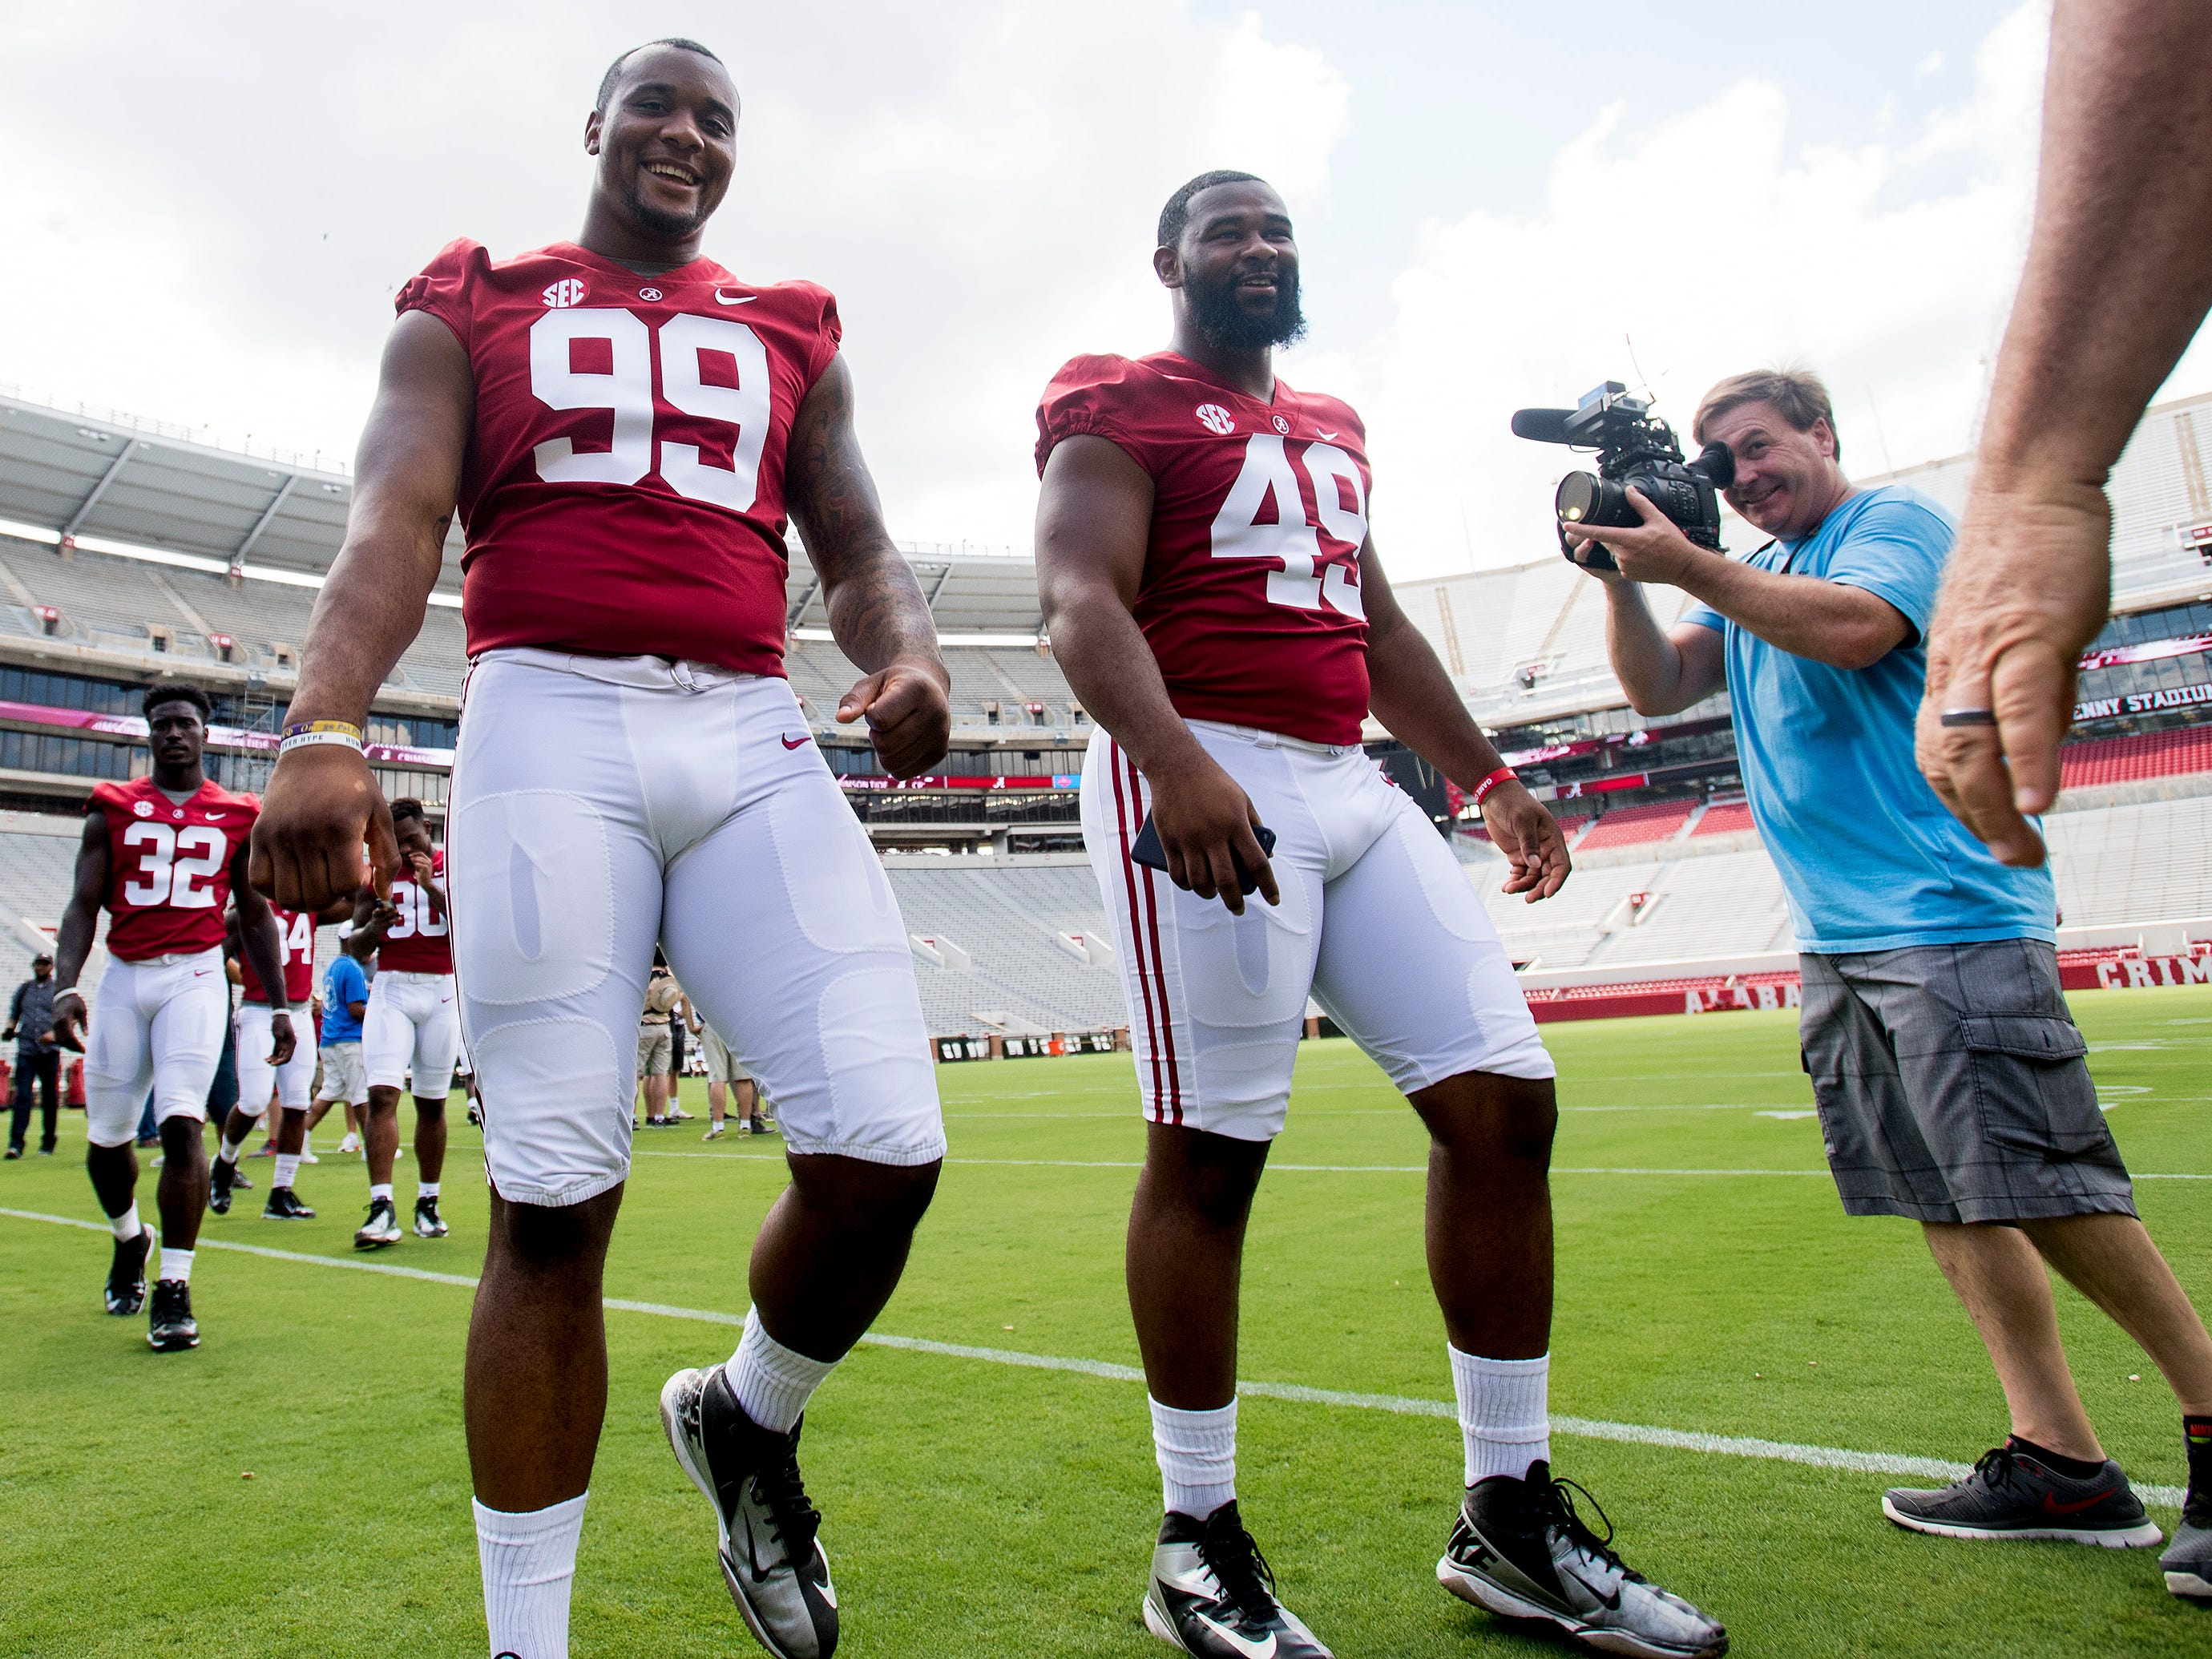 University of Alabama linemen Raekwon Davis (99) and Isaiah Buggs (49) before fan day on the Alabama campus in Tuscaloosa, Ala. on Saturday August 4, 2018.